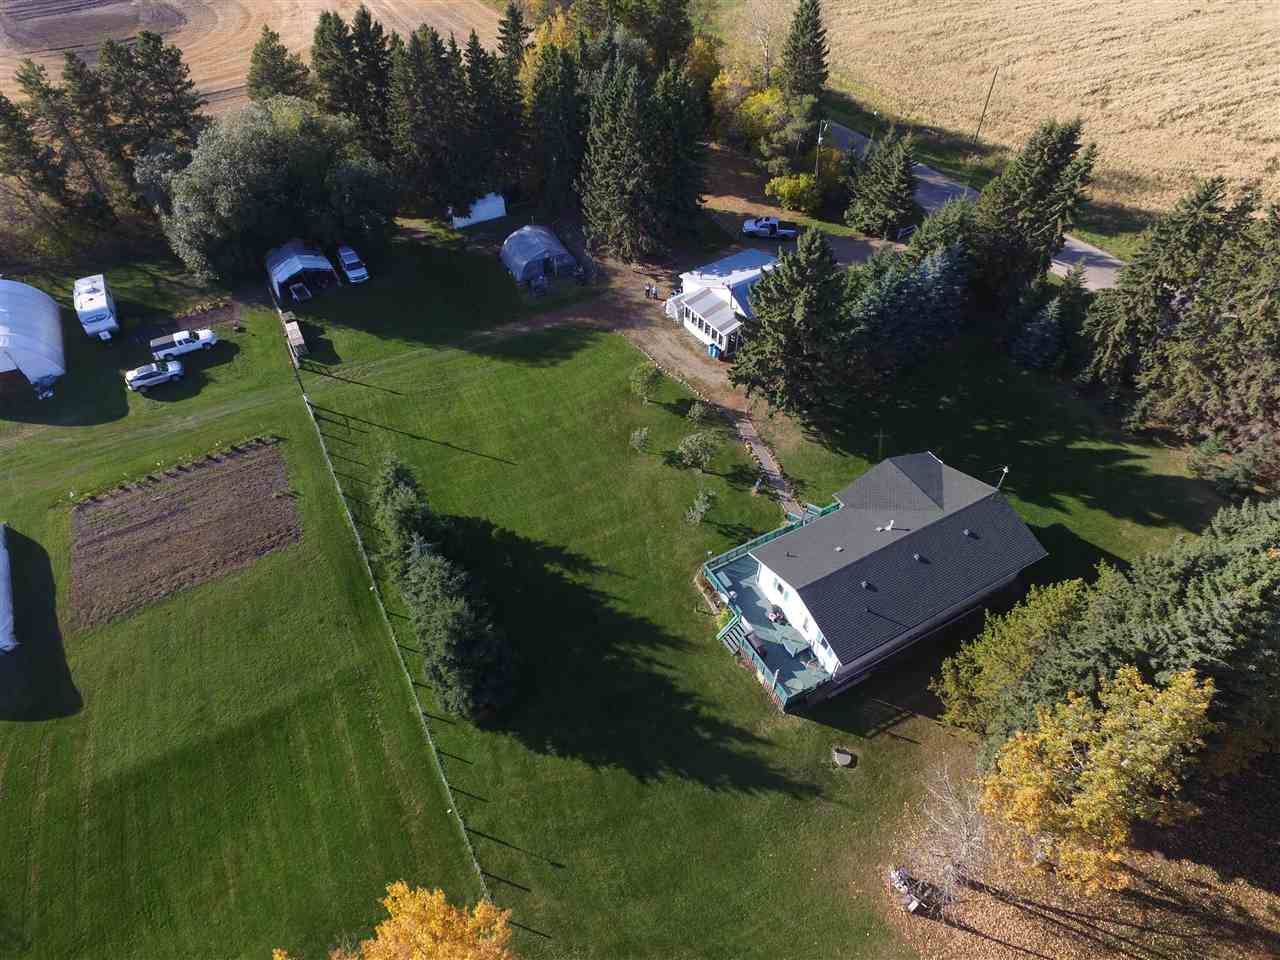 Photo 3: Photos: 265073 Twp Rd 472A: Rural Wetaskiwin County House for sale : MLS®# E4216435